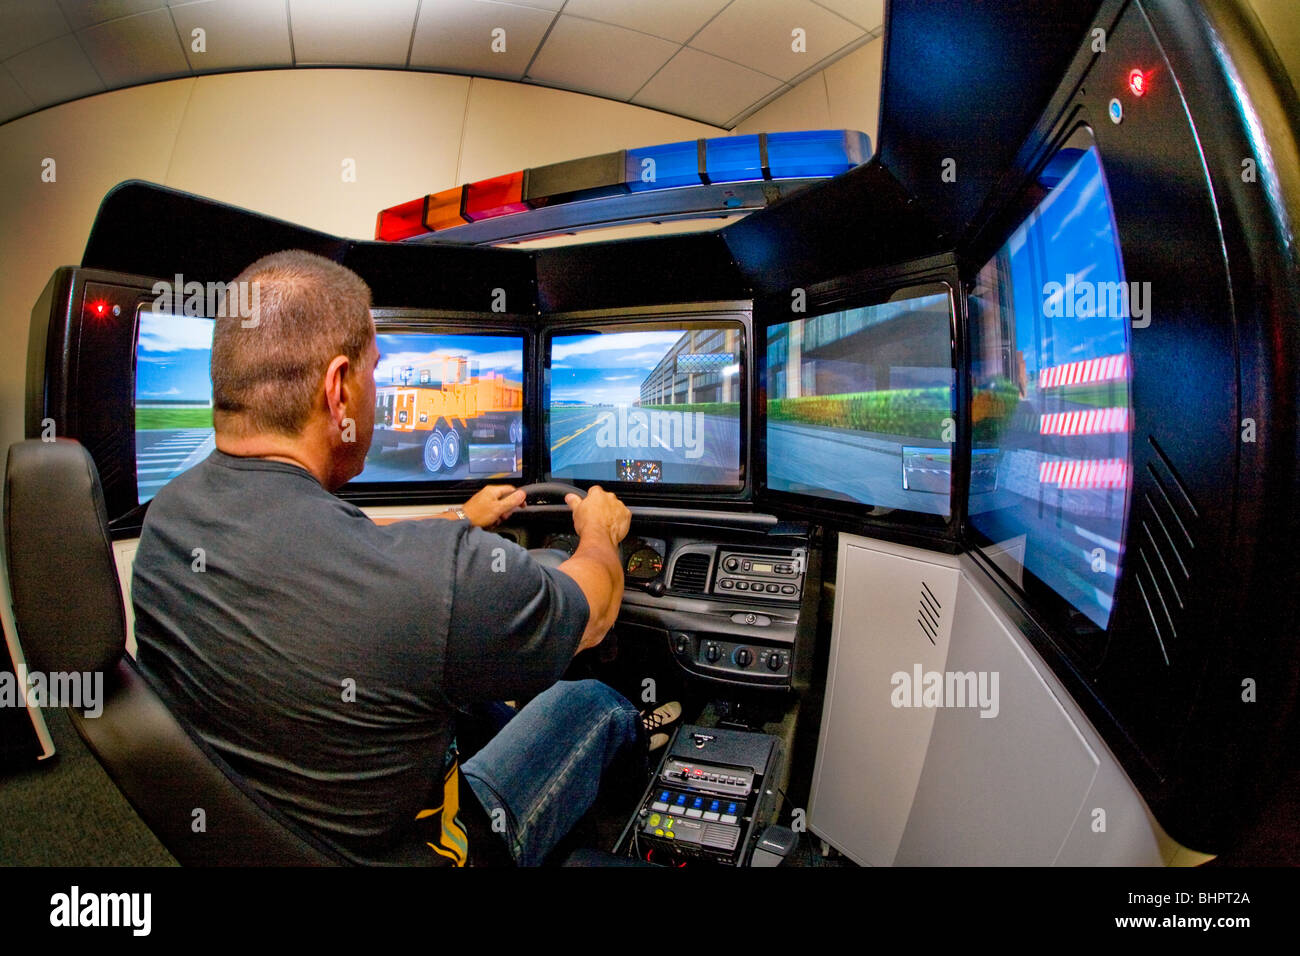 A police officer practices high speed driving skills in a patrol car simulator with a real steering wheel and seat. - Stock Image